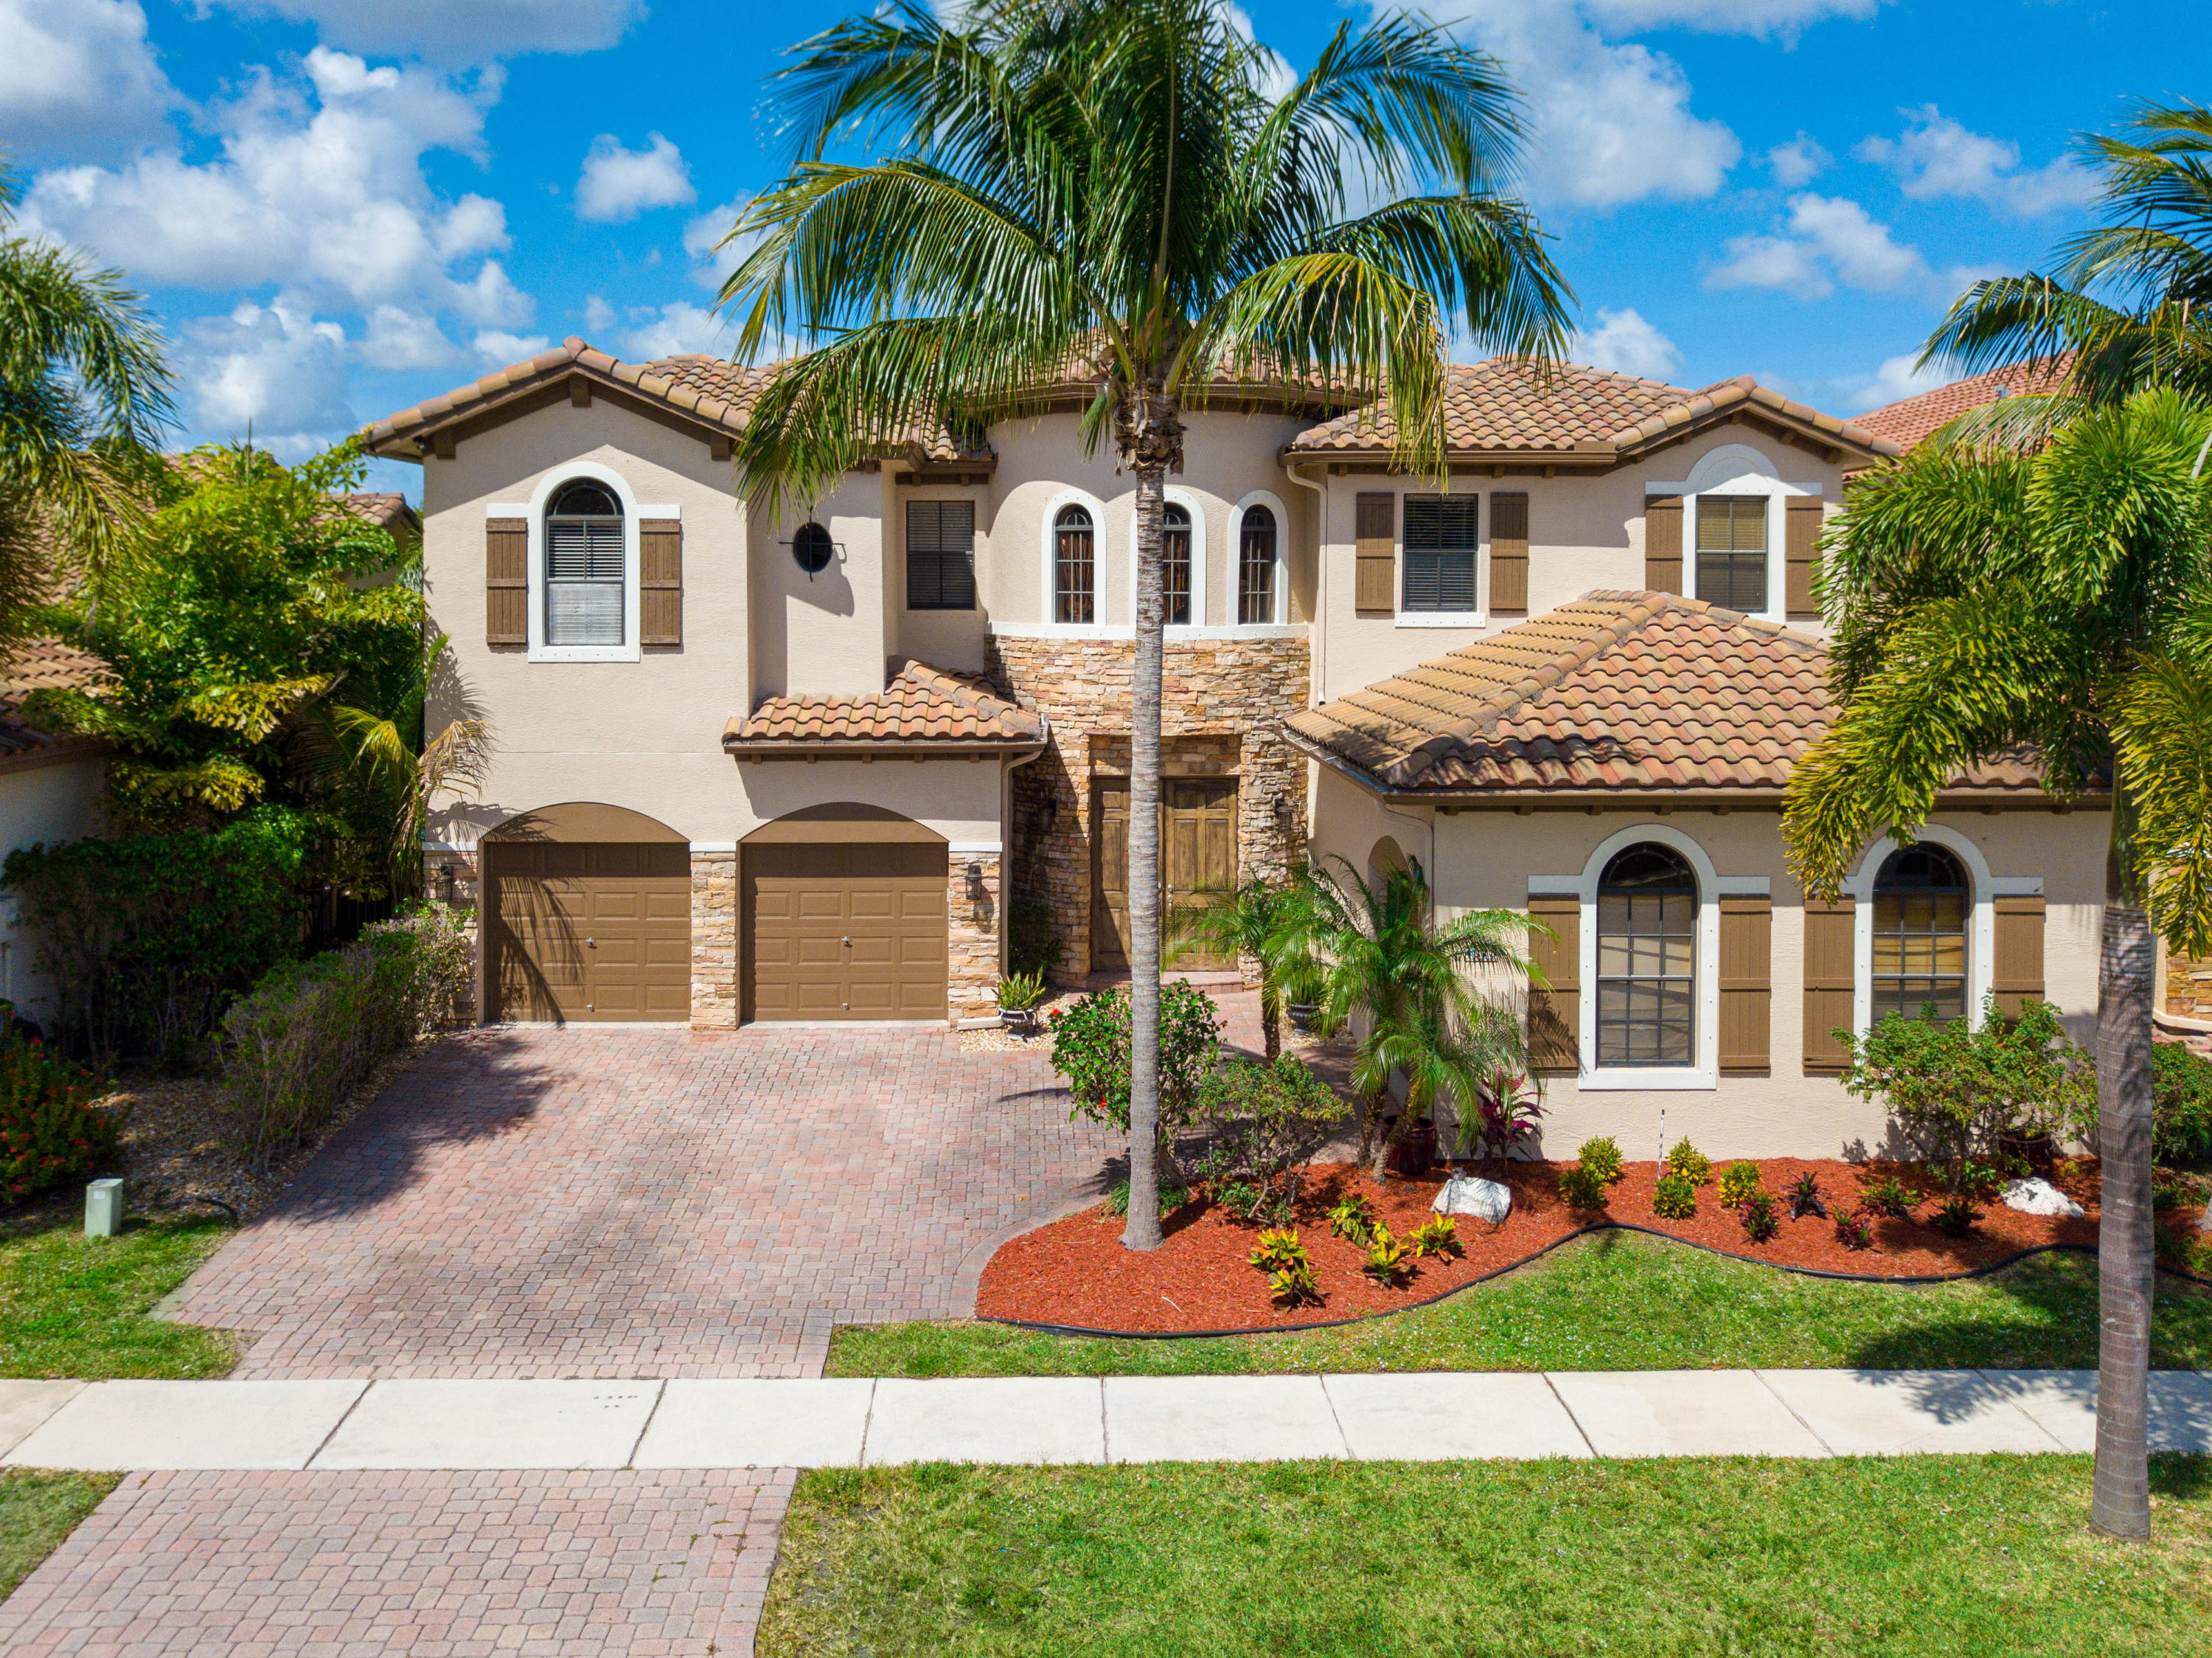 Home for sale in Artesa Jonathans Creek Boynton Beach Florida